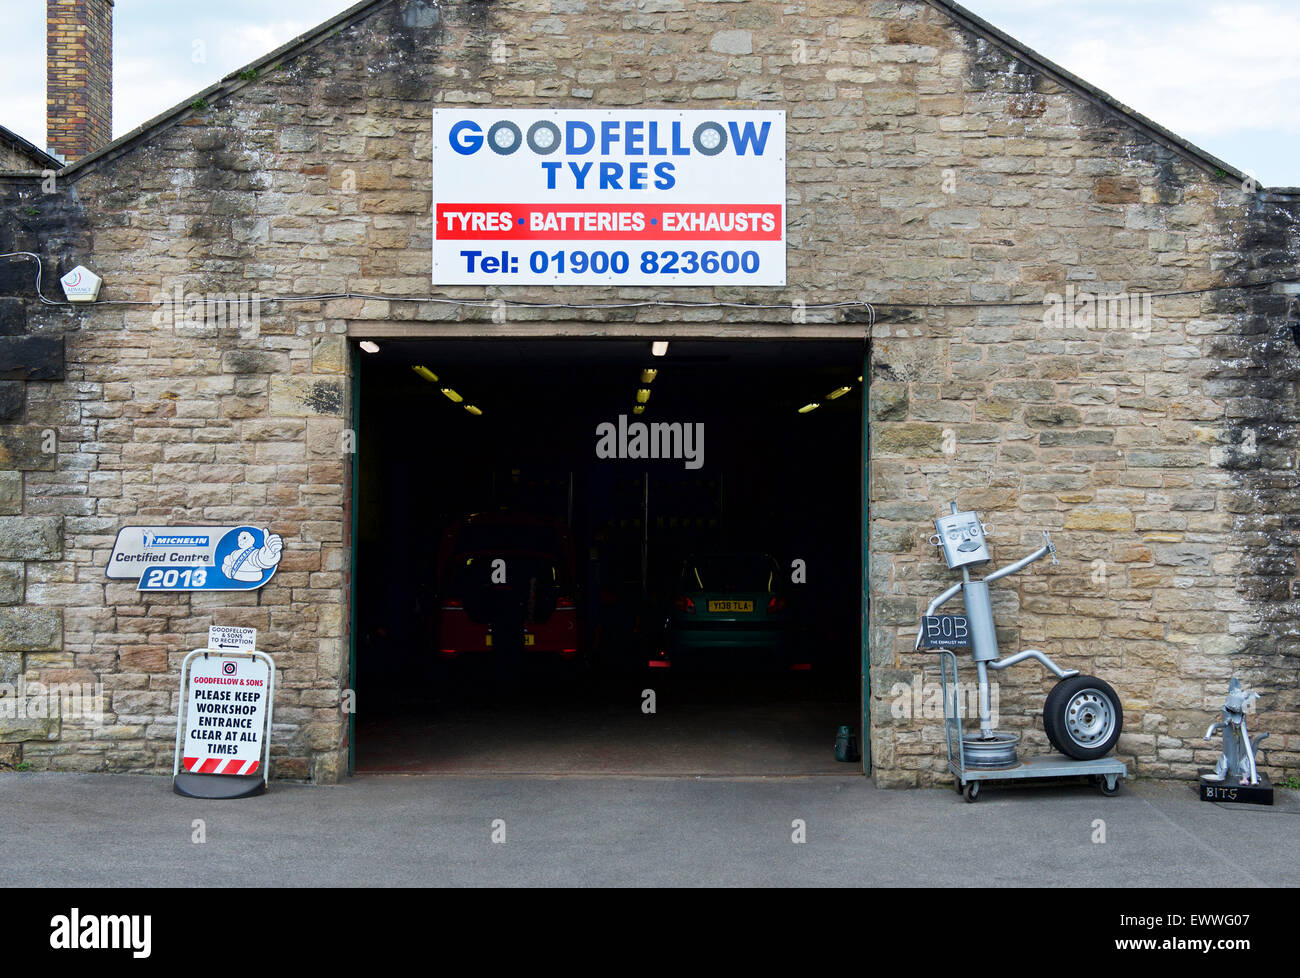 Tyre-fitting workshop, Cockermouth, West Cumbria, England UK - Stock Image